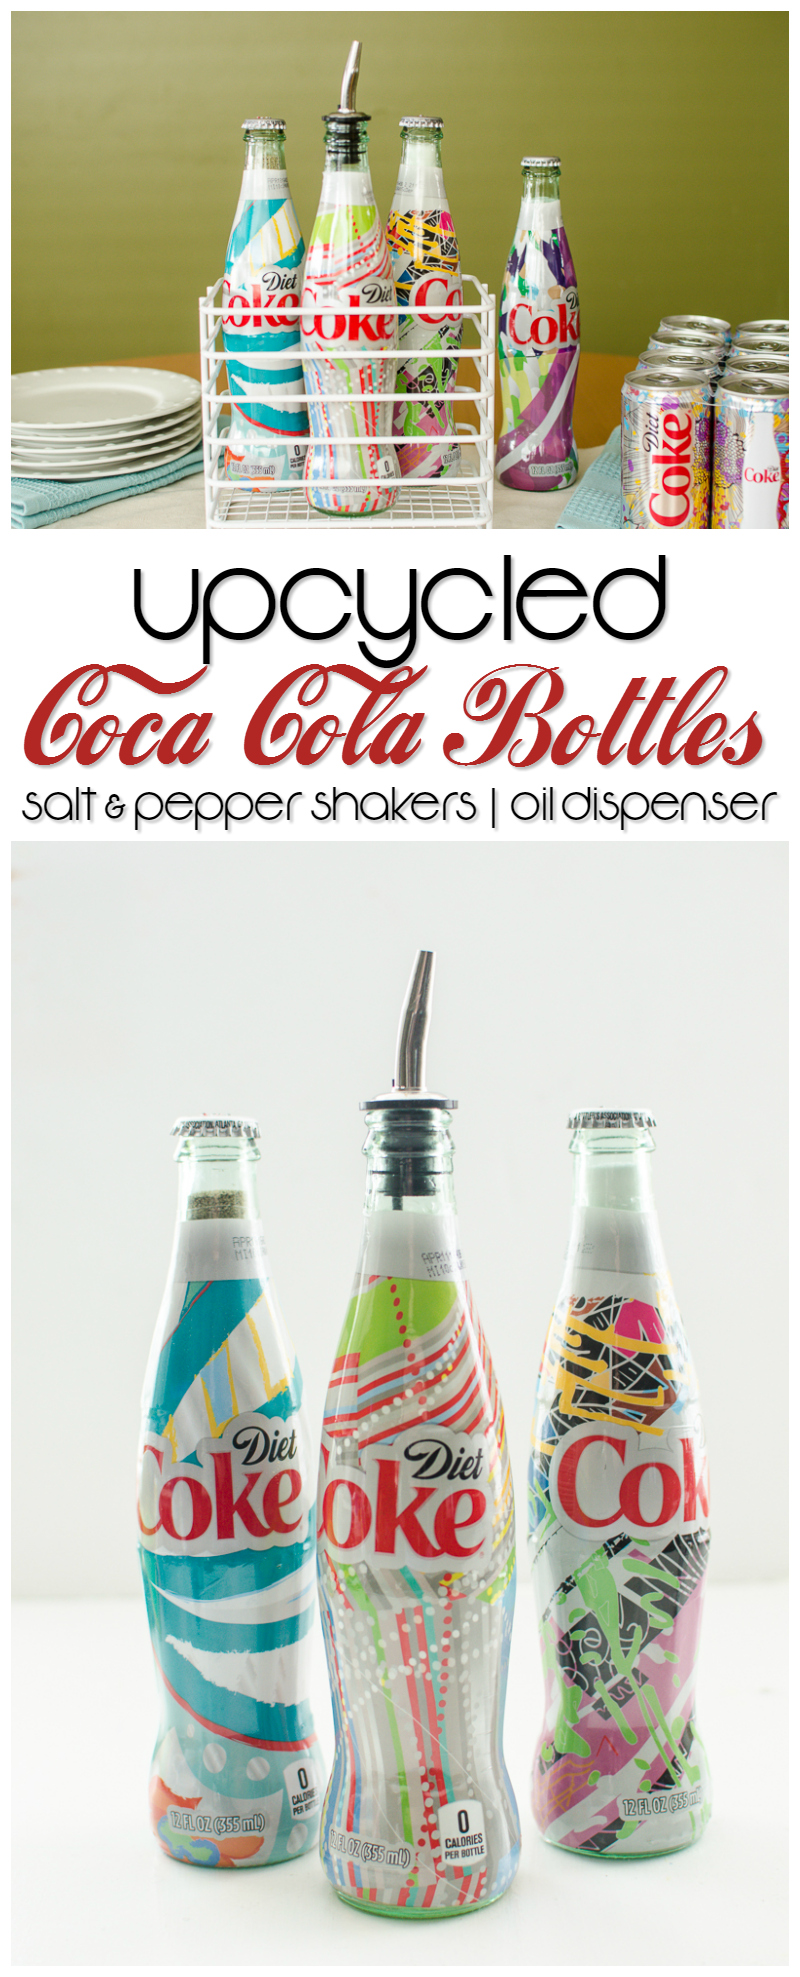 upcycled coca cola bottles